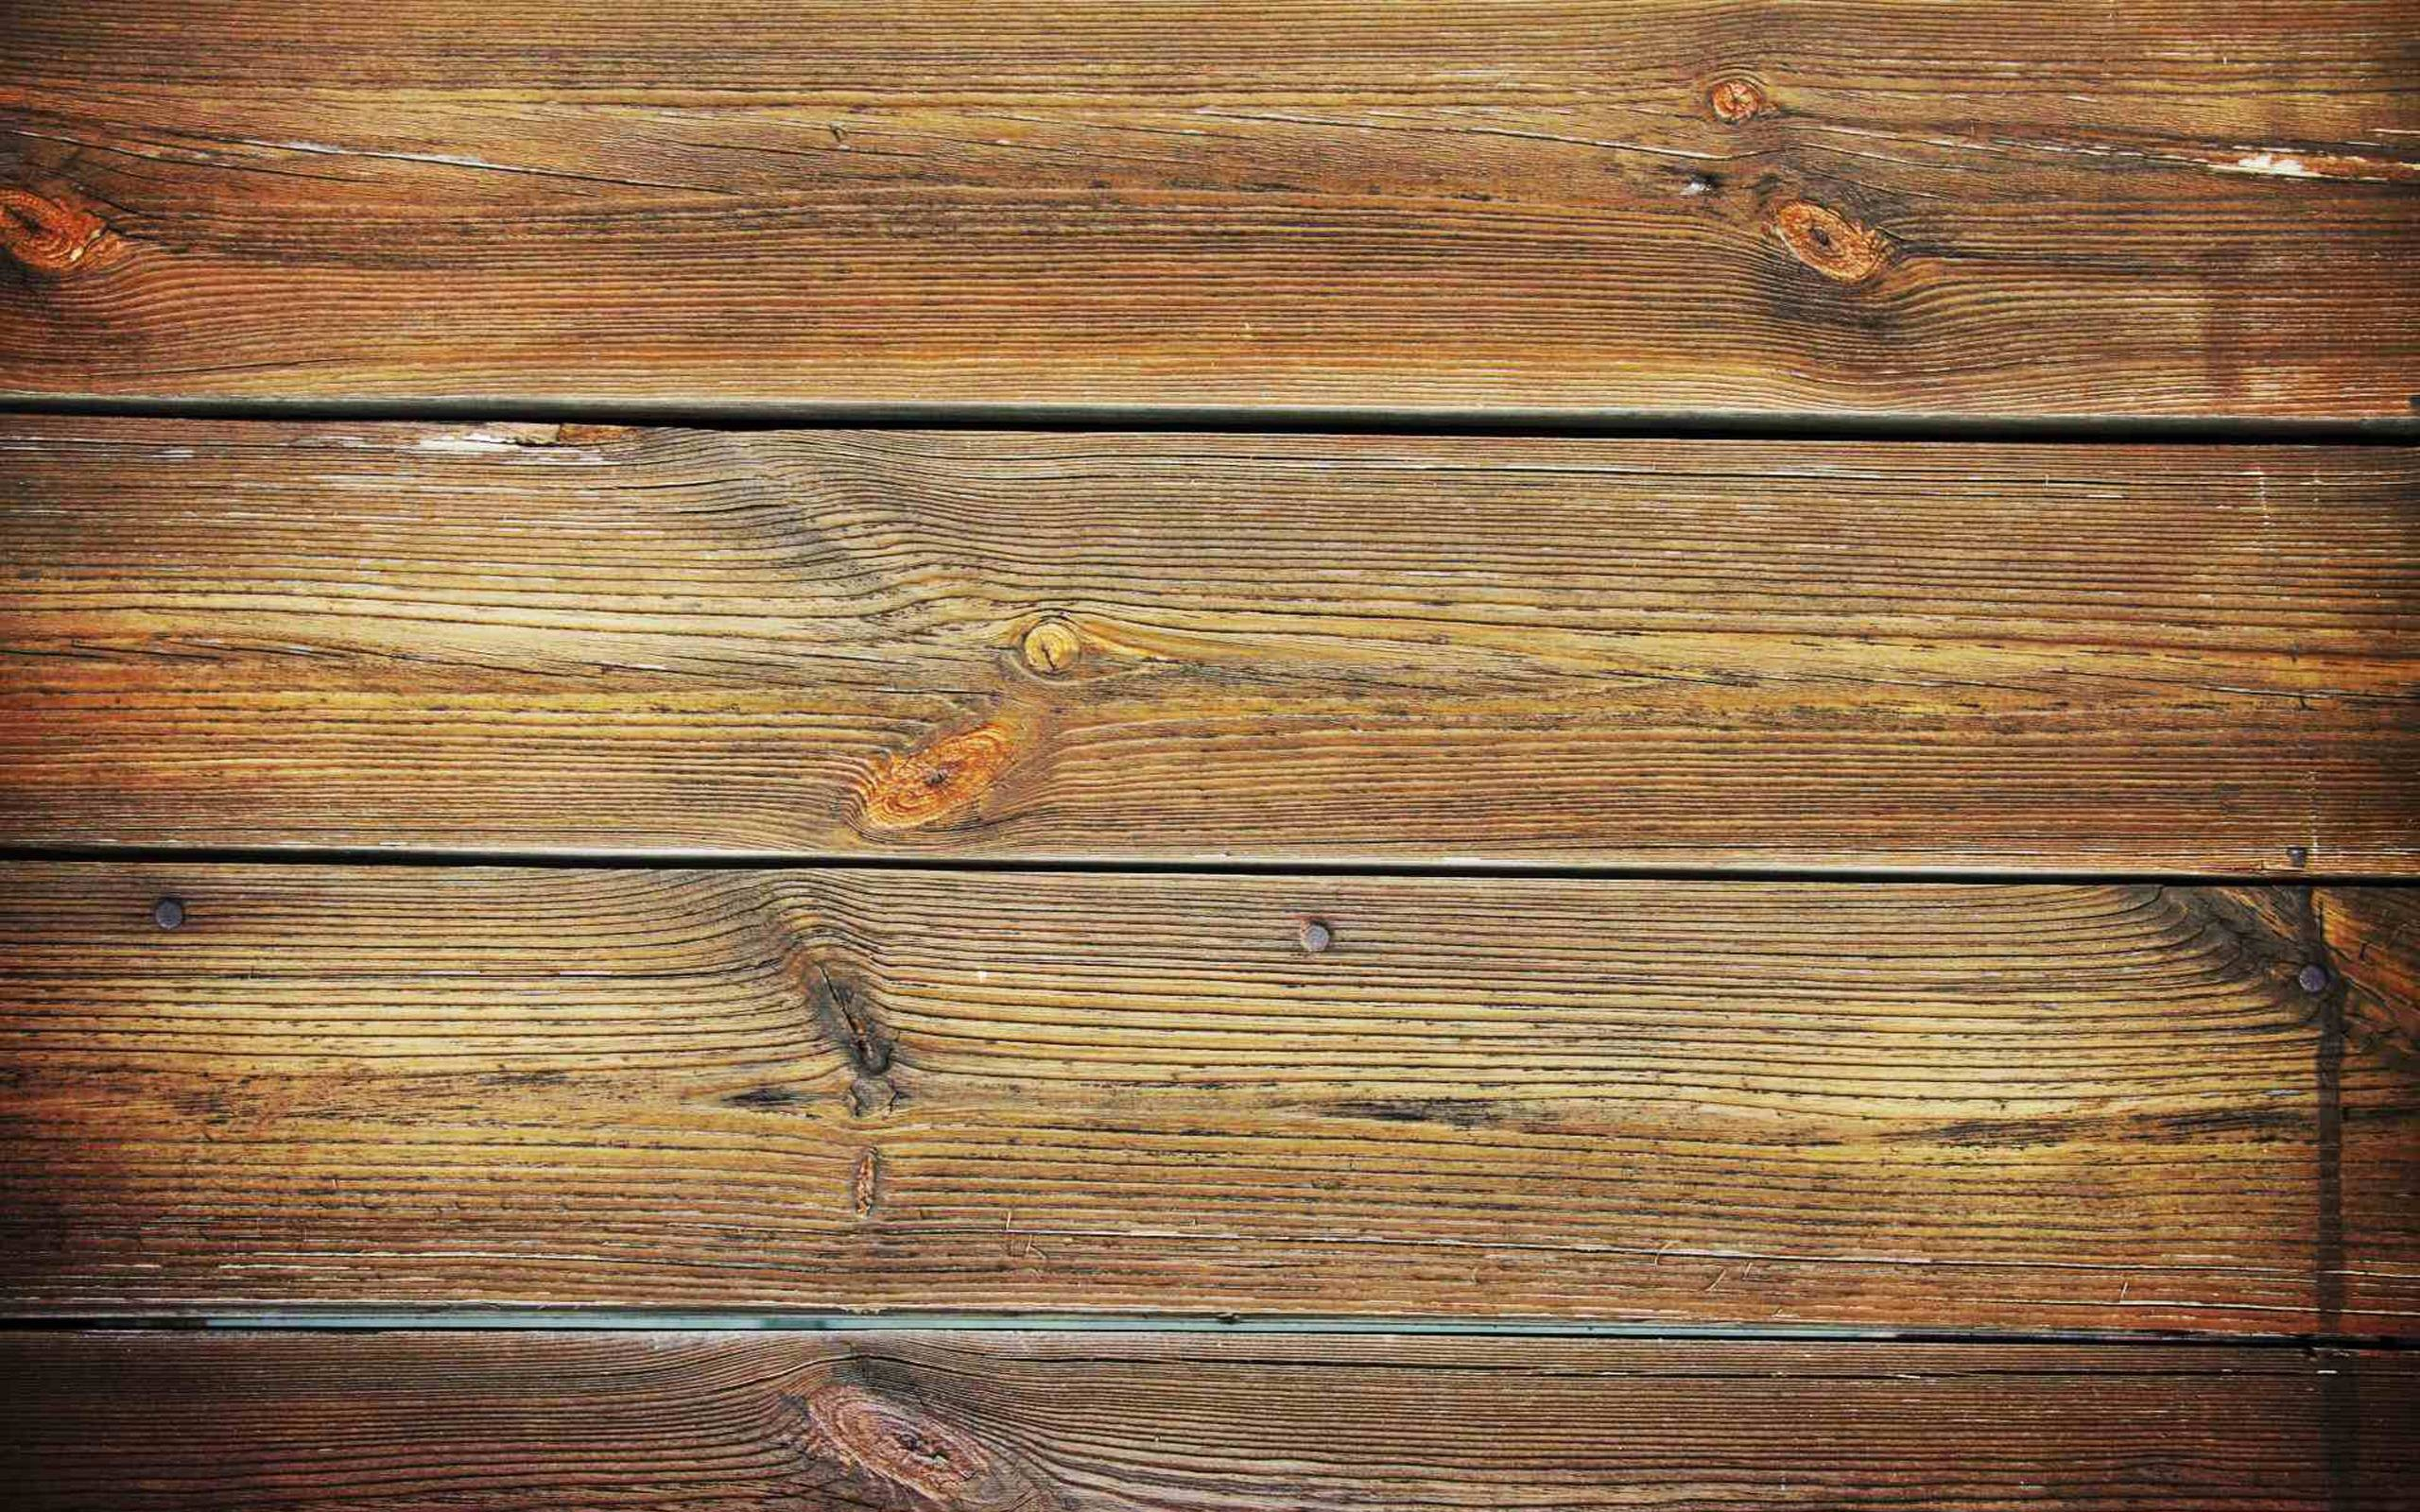 Wooden Desktop Vintage Rustic Wood Background ① Download Free Amazing